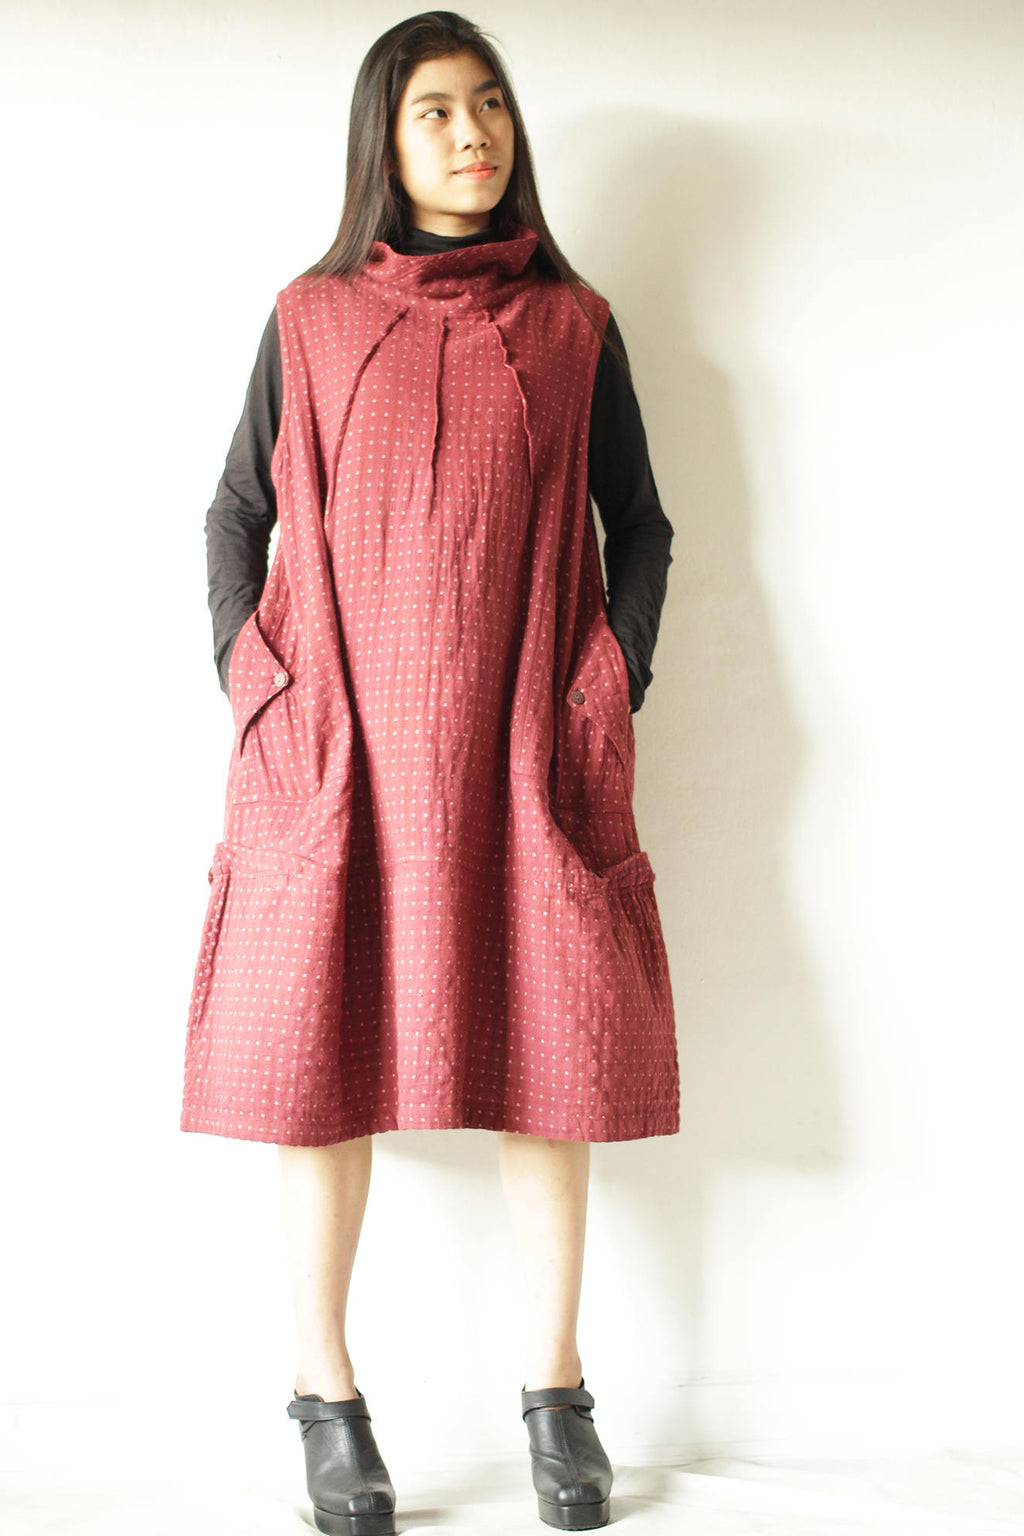 Dress/Turtle neck dress patterned fabric long sleeve knee length D1403